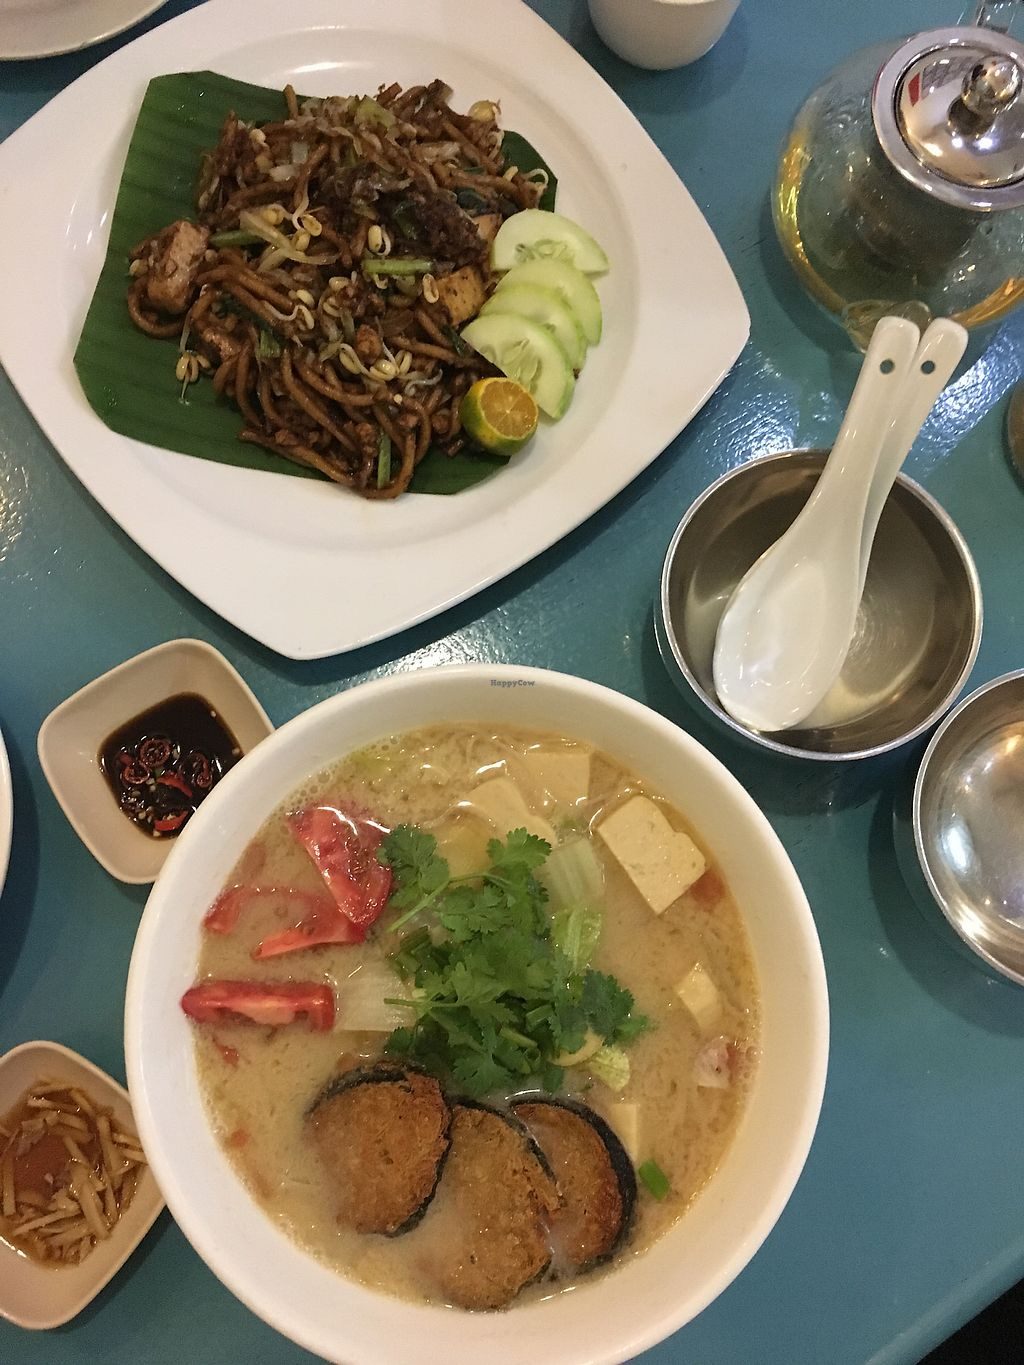 """Photo of You G Cafe  by <a href=""""/members/profile/Spaghetti_monster"""">Spaghetti_monster</a> <br/>Mee mamak and vegan fish noodle soup  <br/> September 14, 2017  - <a href='/contact/abuse/image/69025/304270'>Report</a>"""